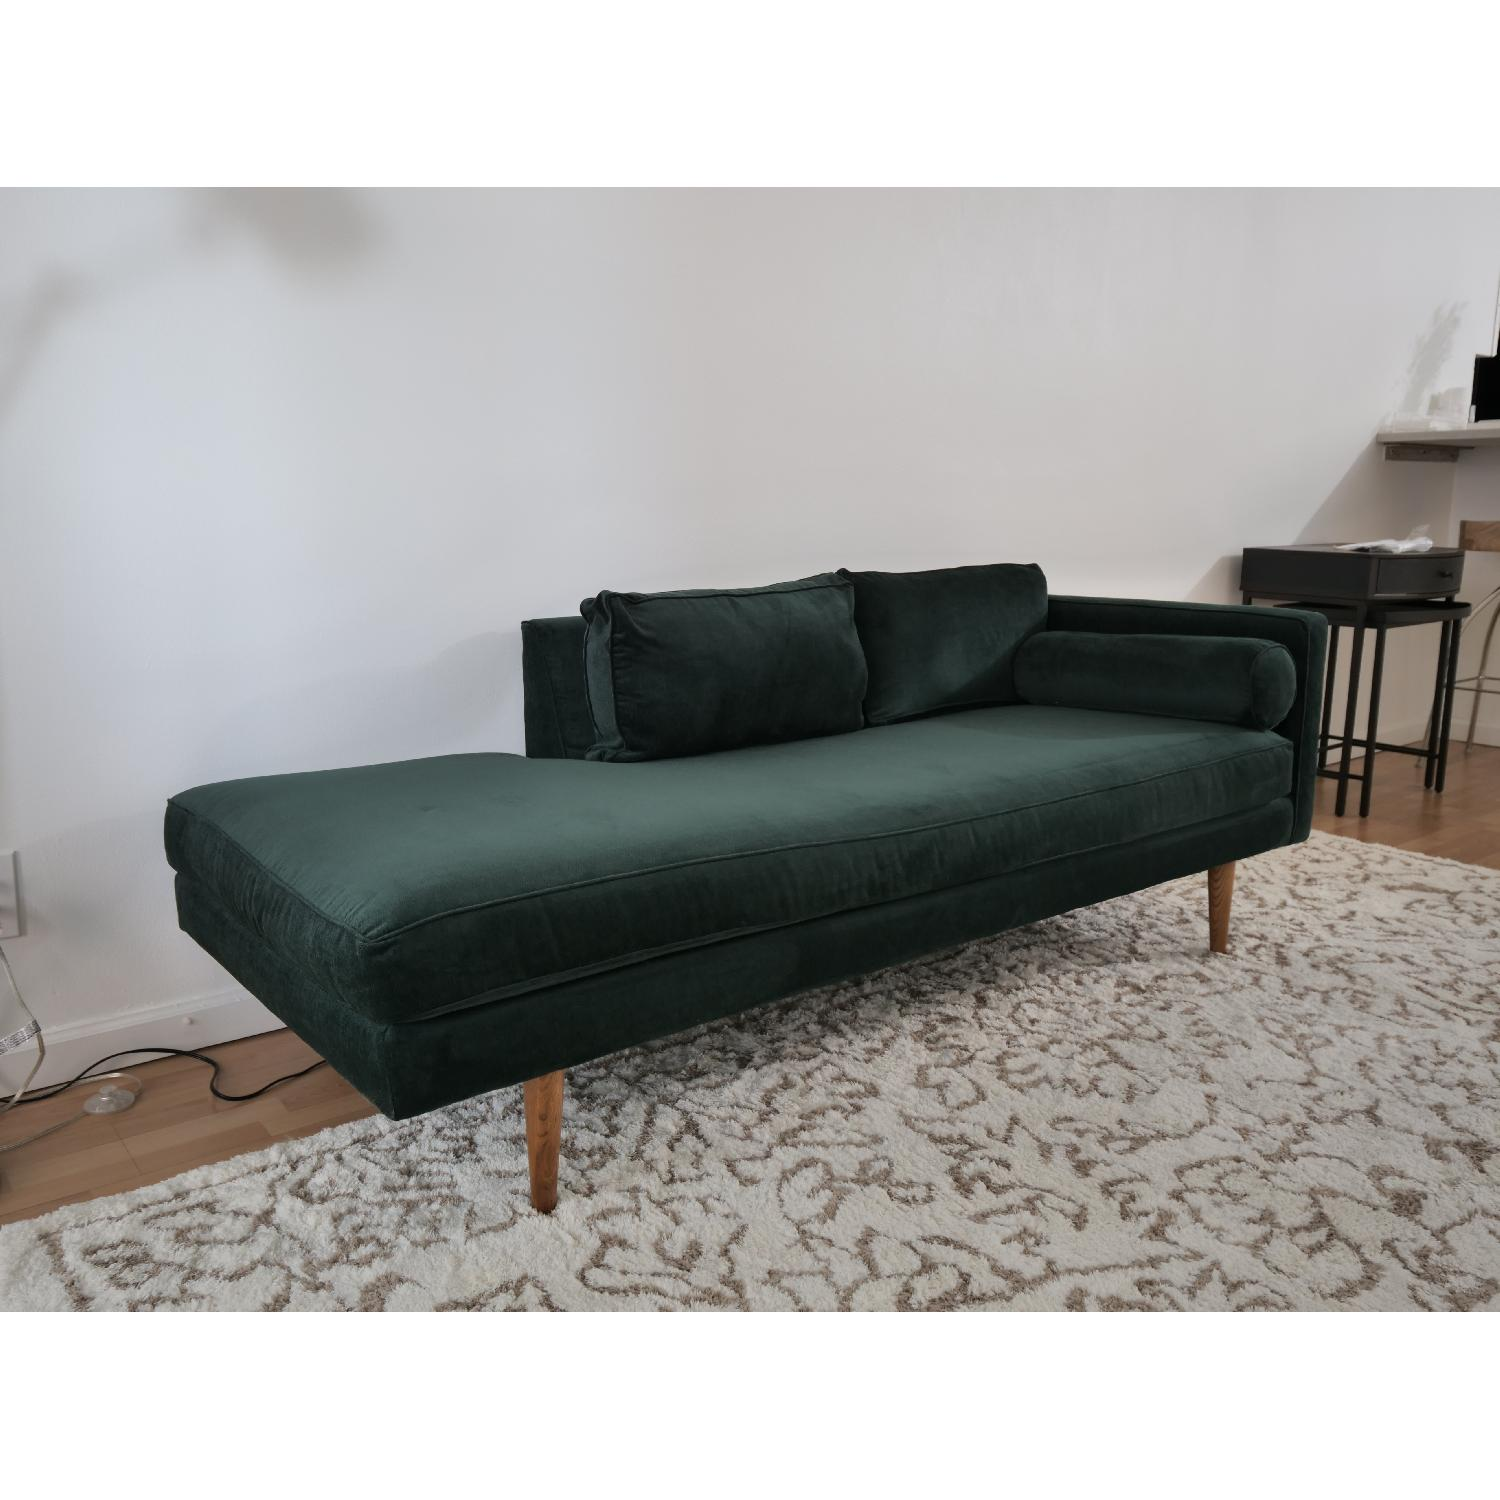 West Elm Monroe Mid-Century Chaise Lounger-0